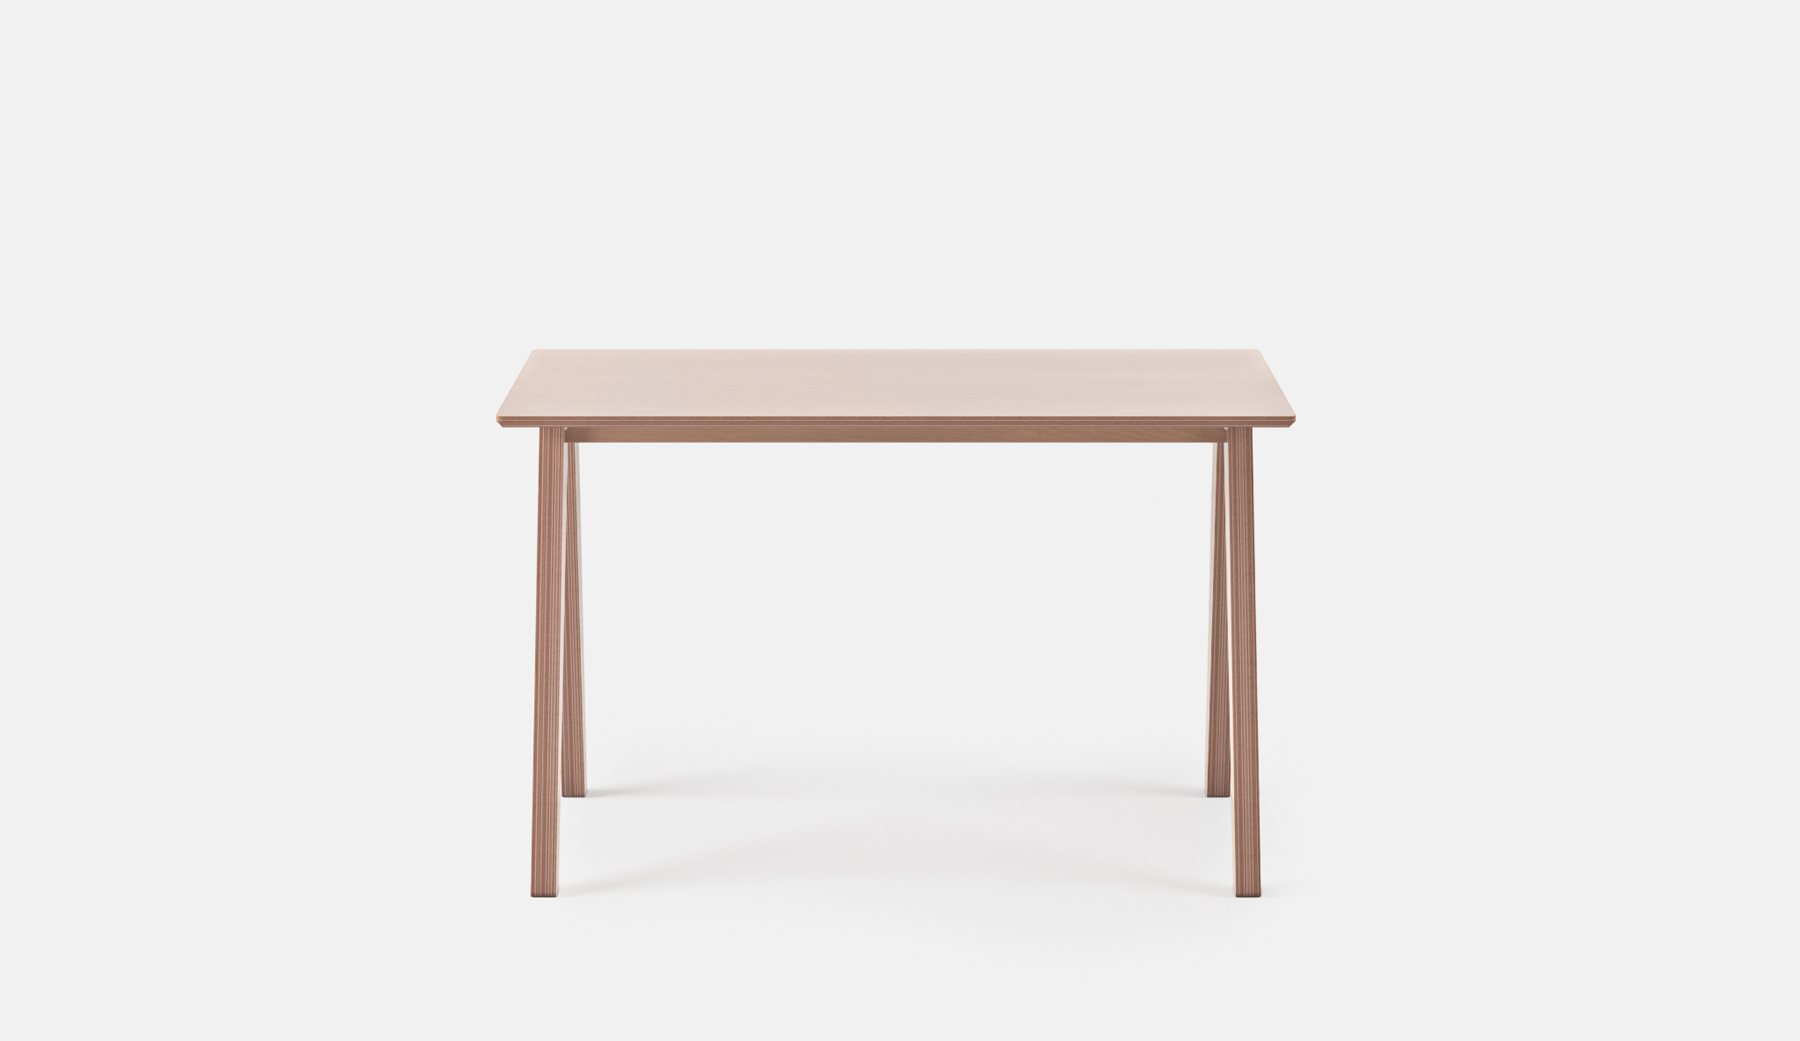 opendesk - furniture